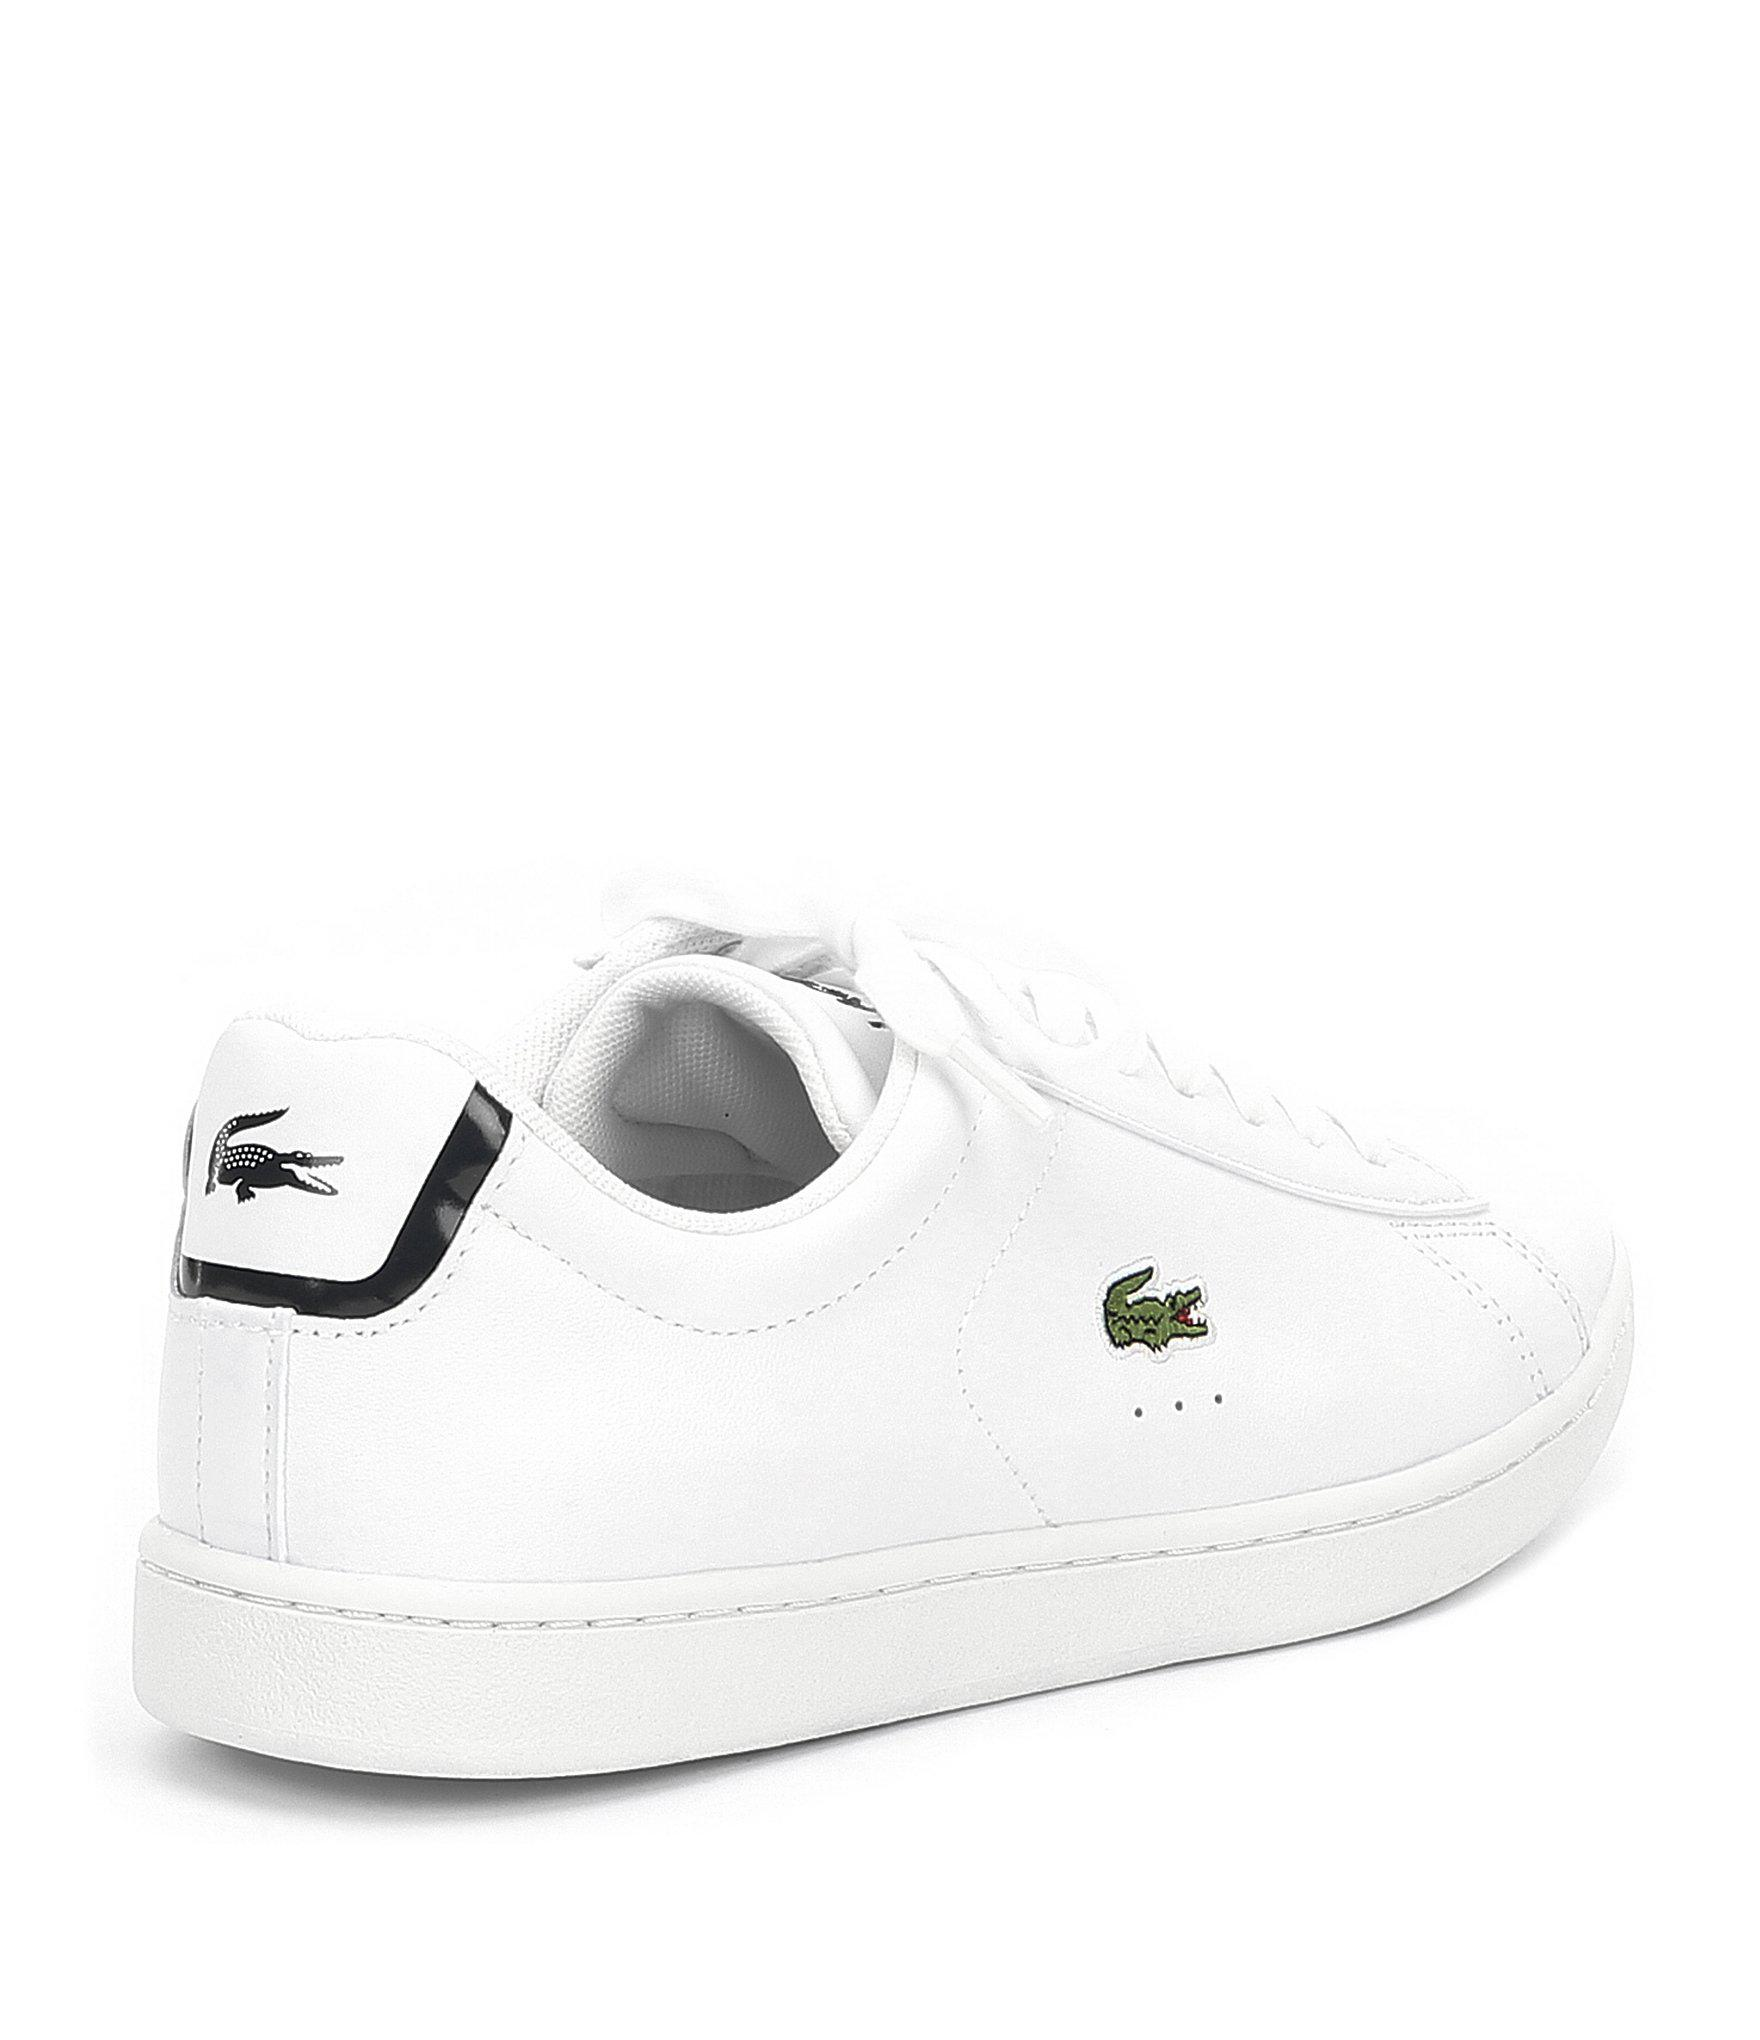 6a26b91f23fa09 Lacoste - White Carnaby Bl 1 Sneakers - Lyst. View fullscreen